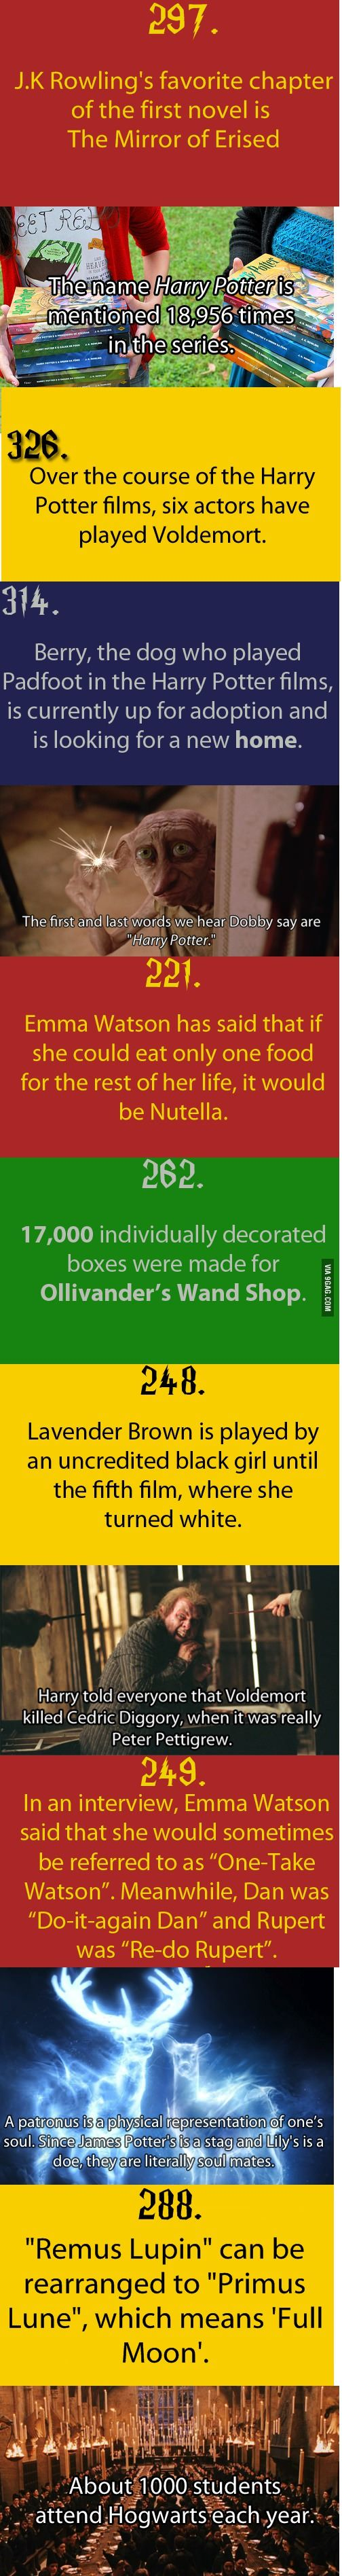 9GAG - Just Some Harry Potter Facts Part 1